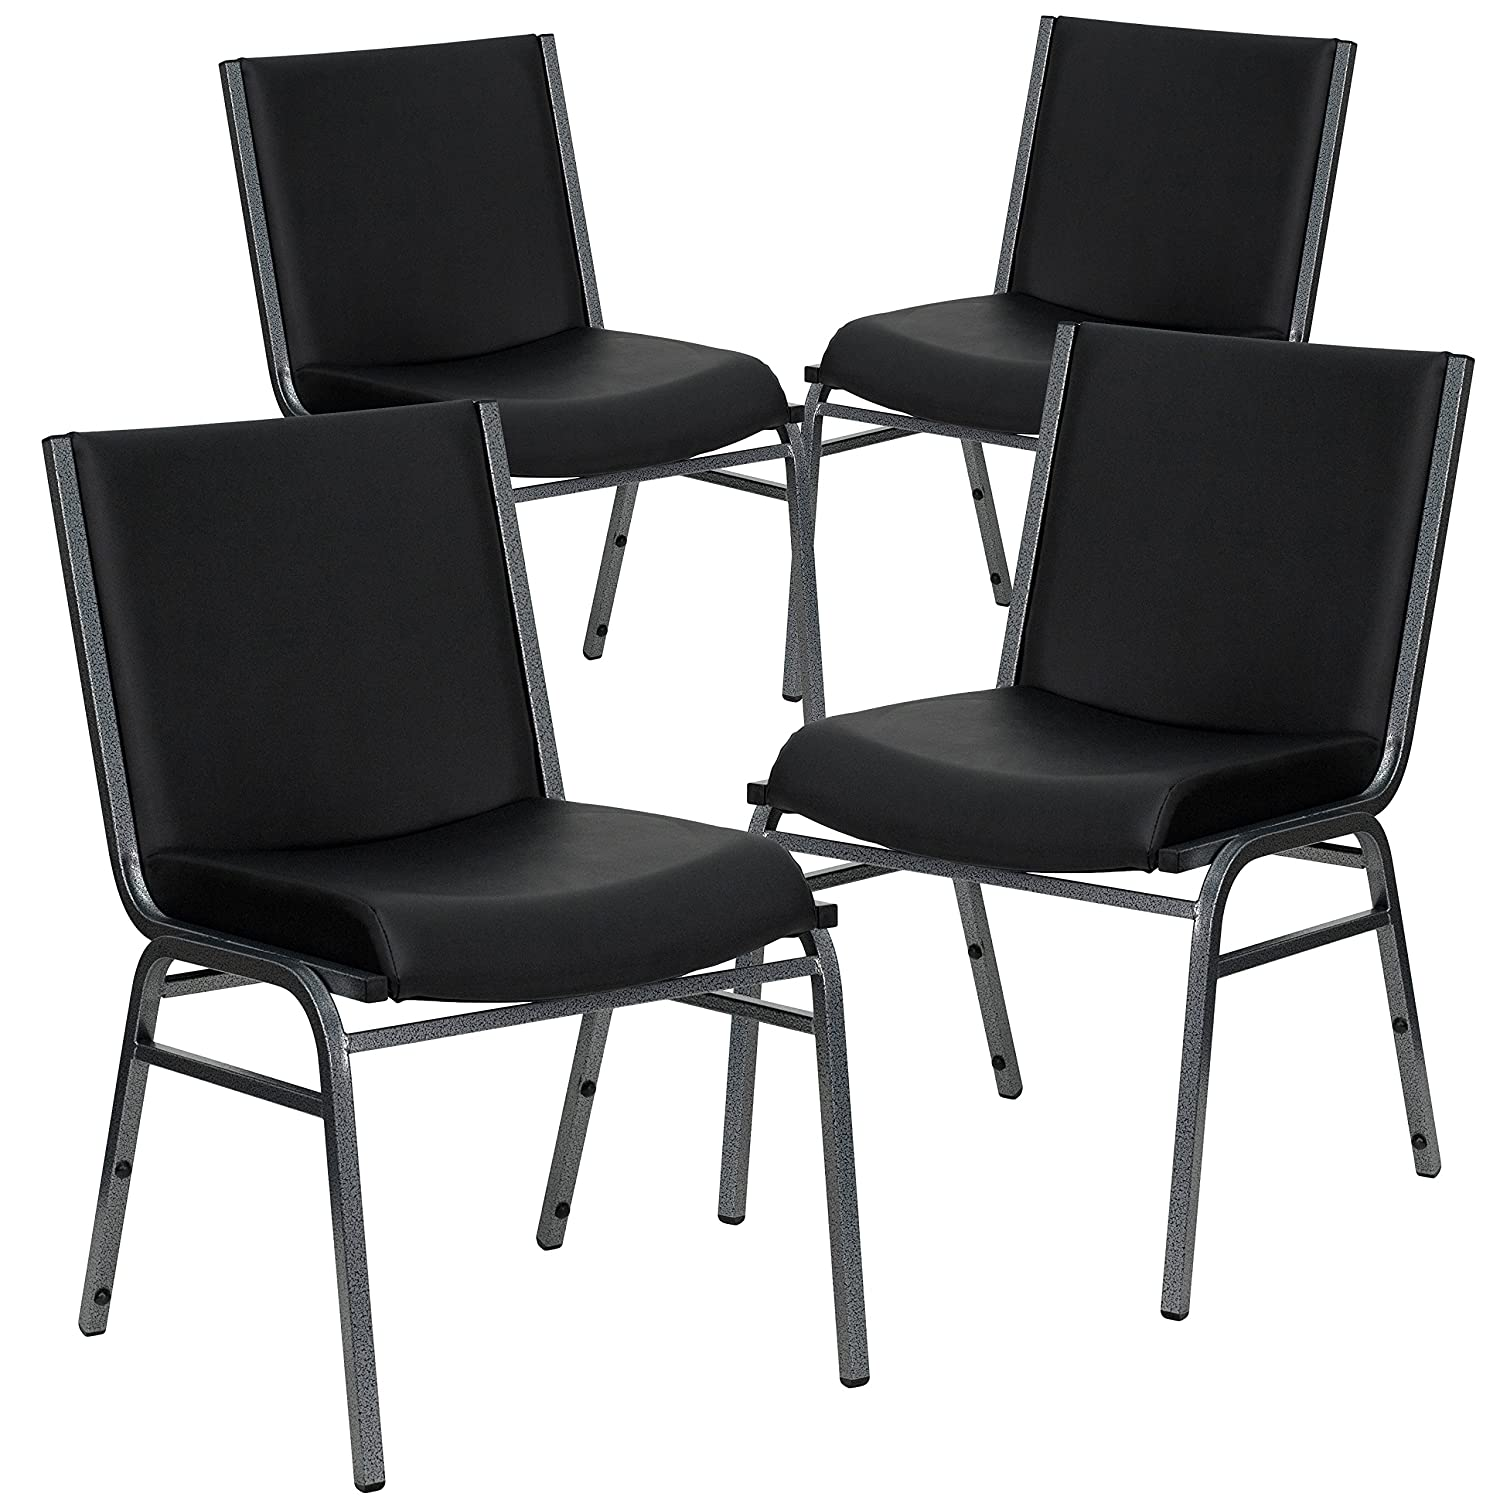 Amazon.com: Flash Furniture 4 Pk. HERCULES Series Heavy Duty Black ...